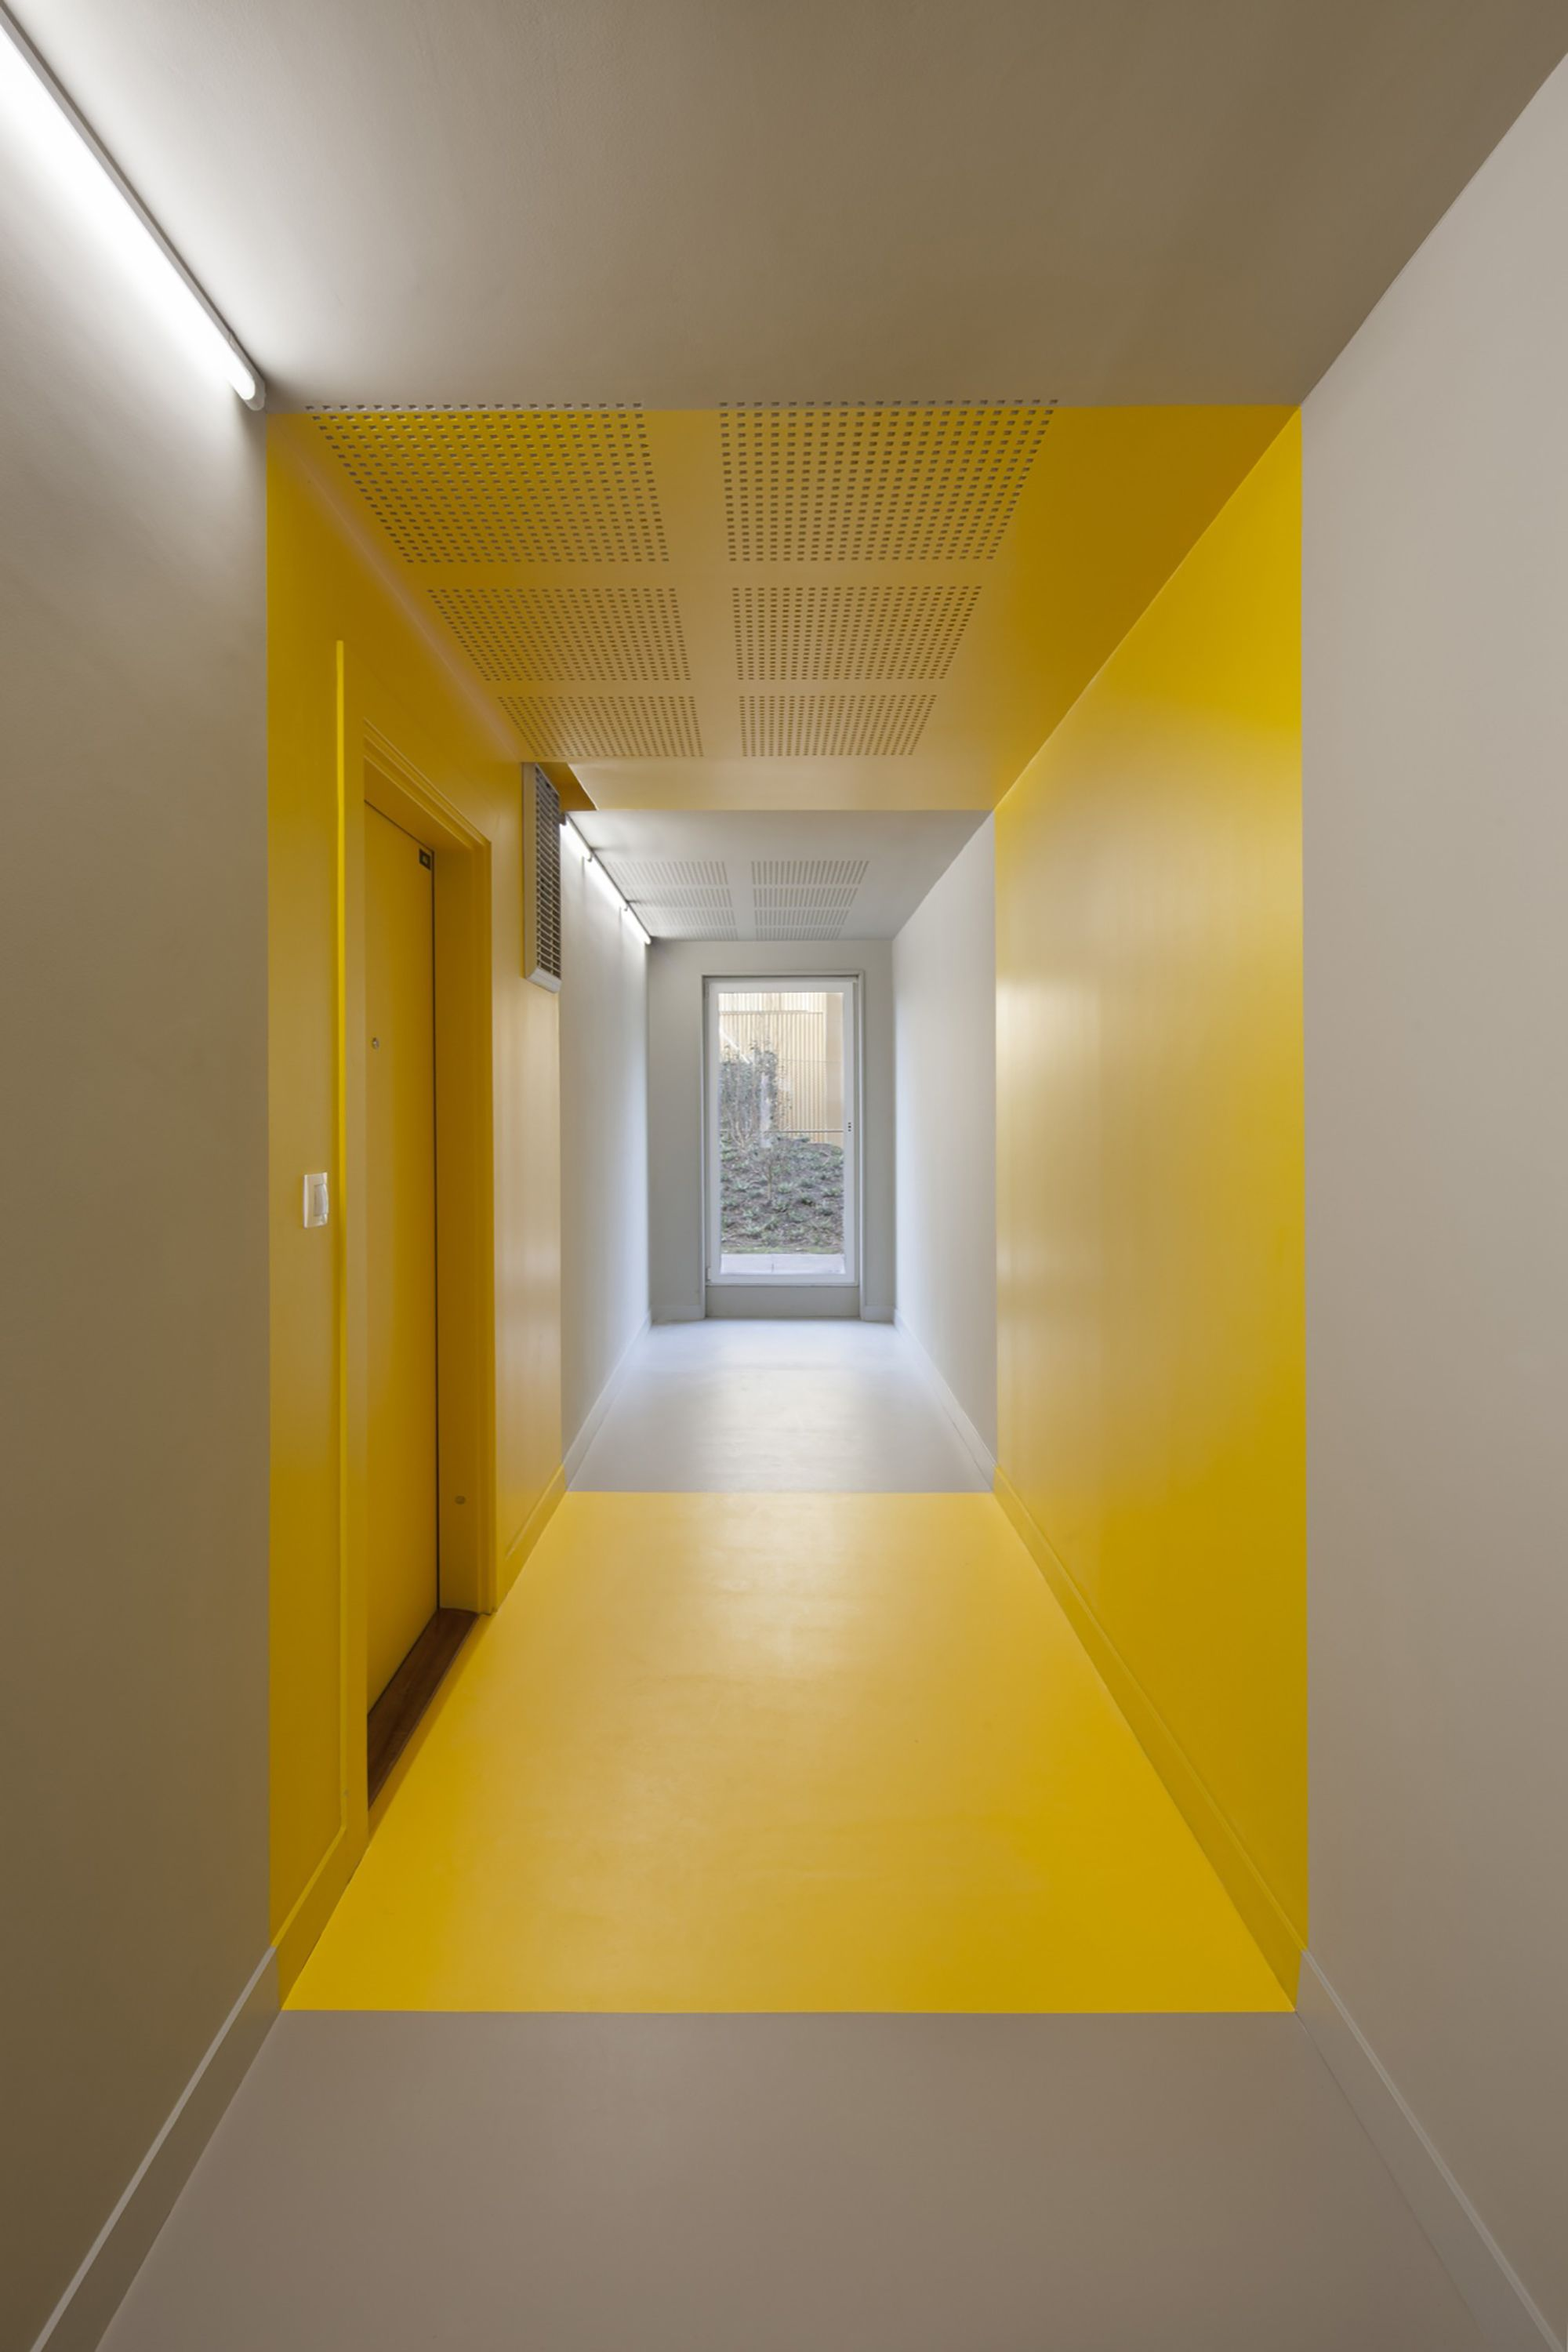 Innenfarbe im haus gallery of housing in paris  comte u vollenweider  hamonic